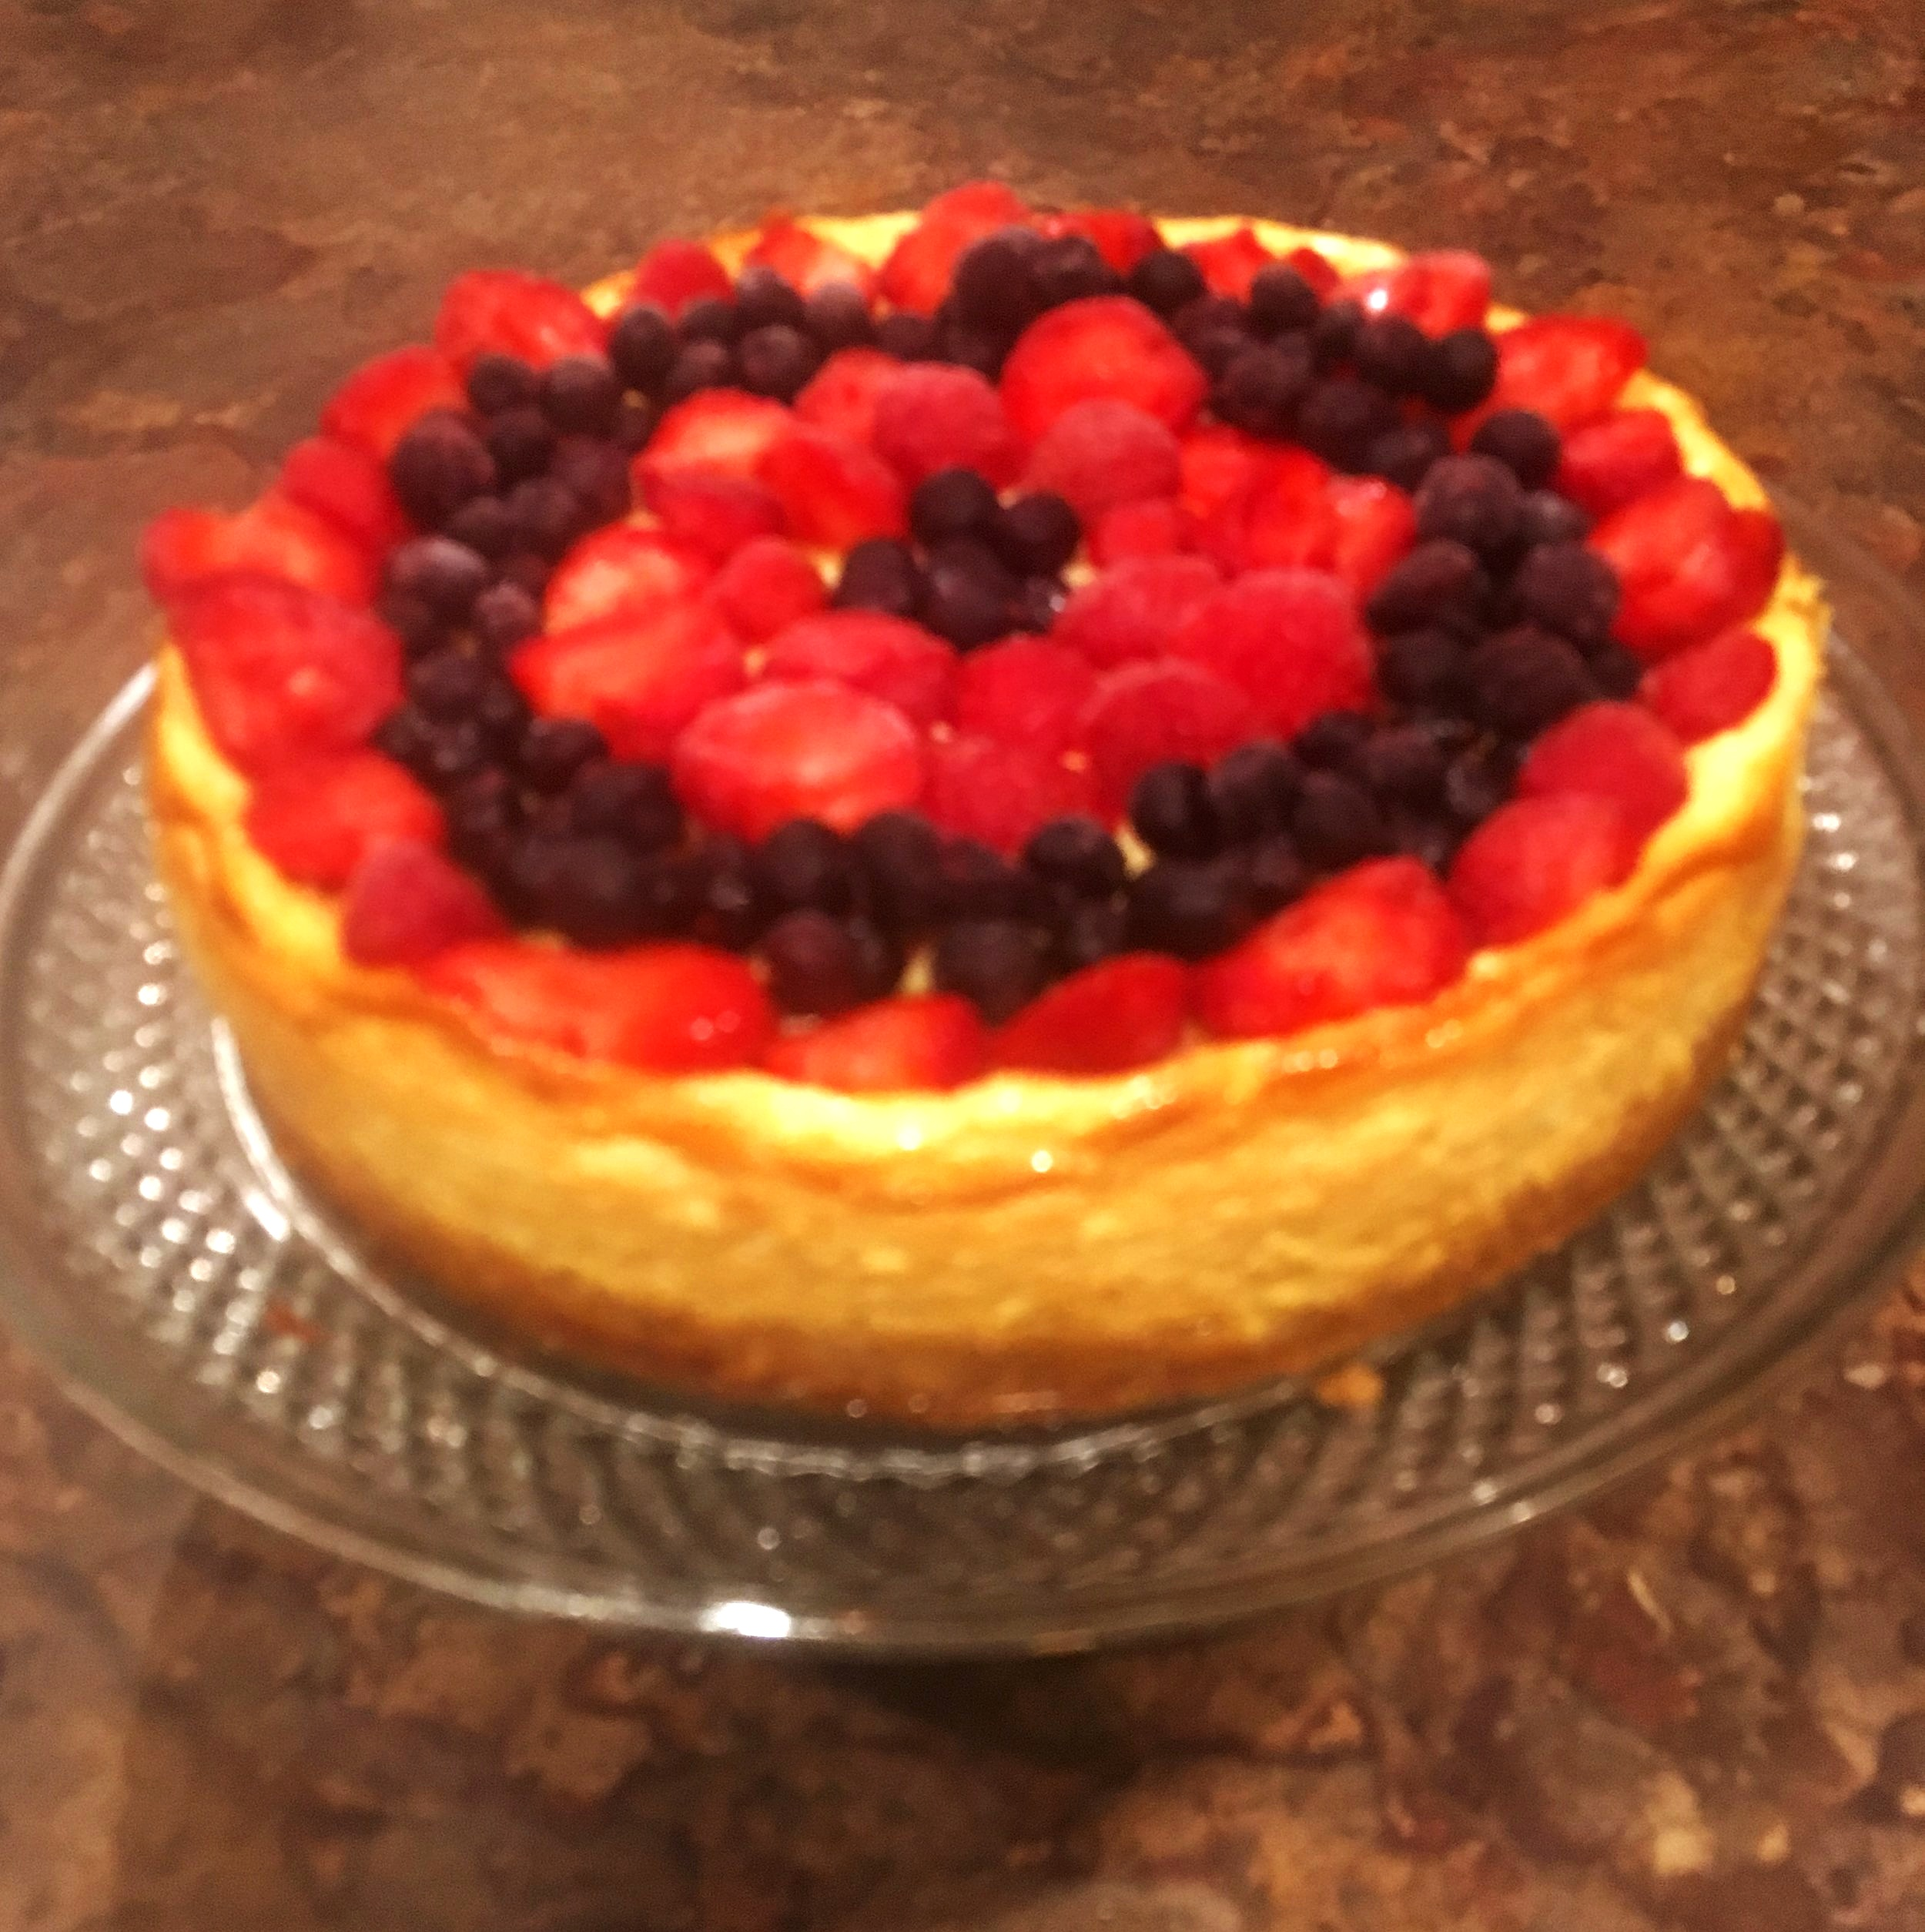 Arlene's Guilt-free Cheesecake with strawberries & blueberries.